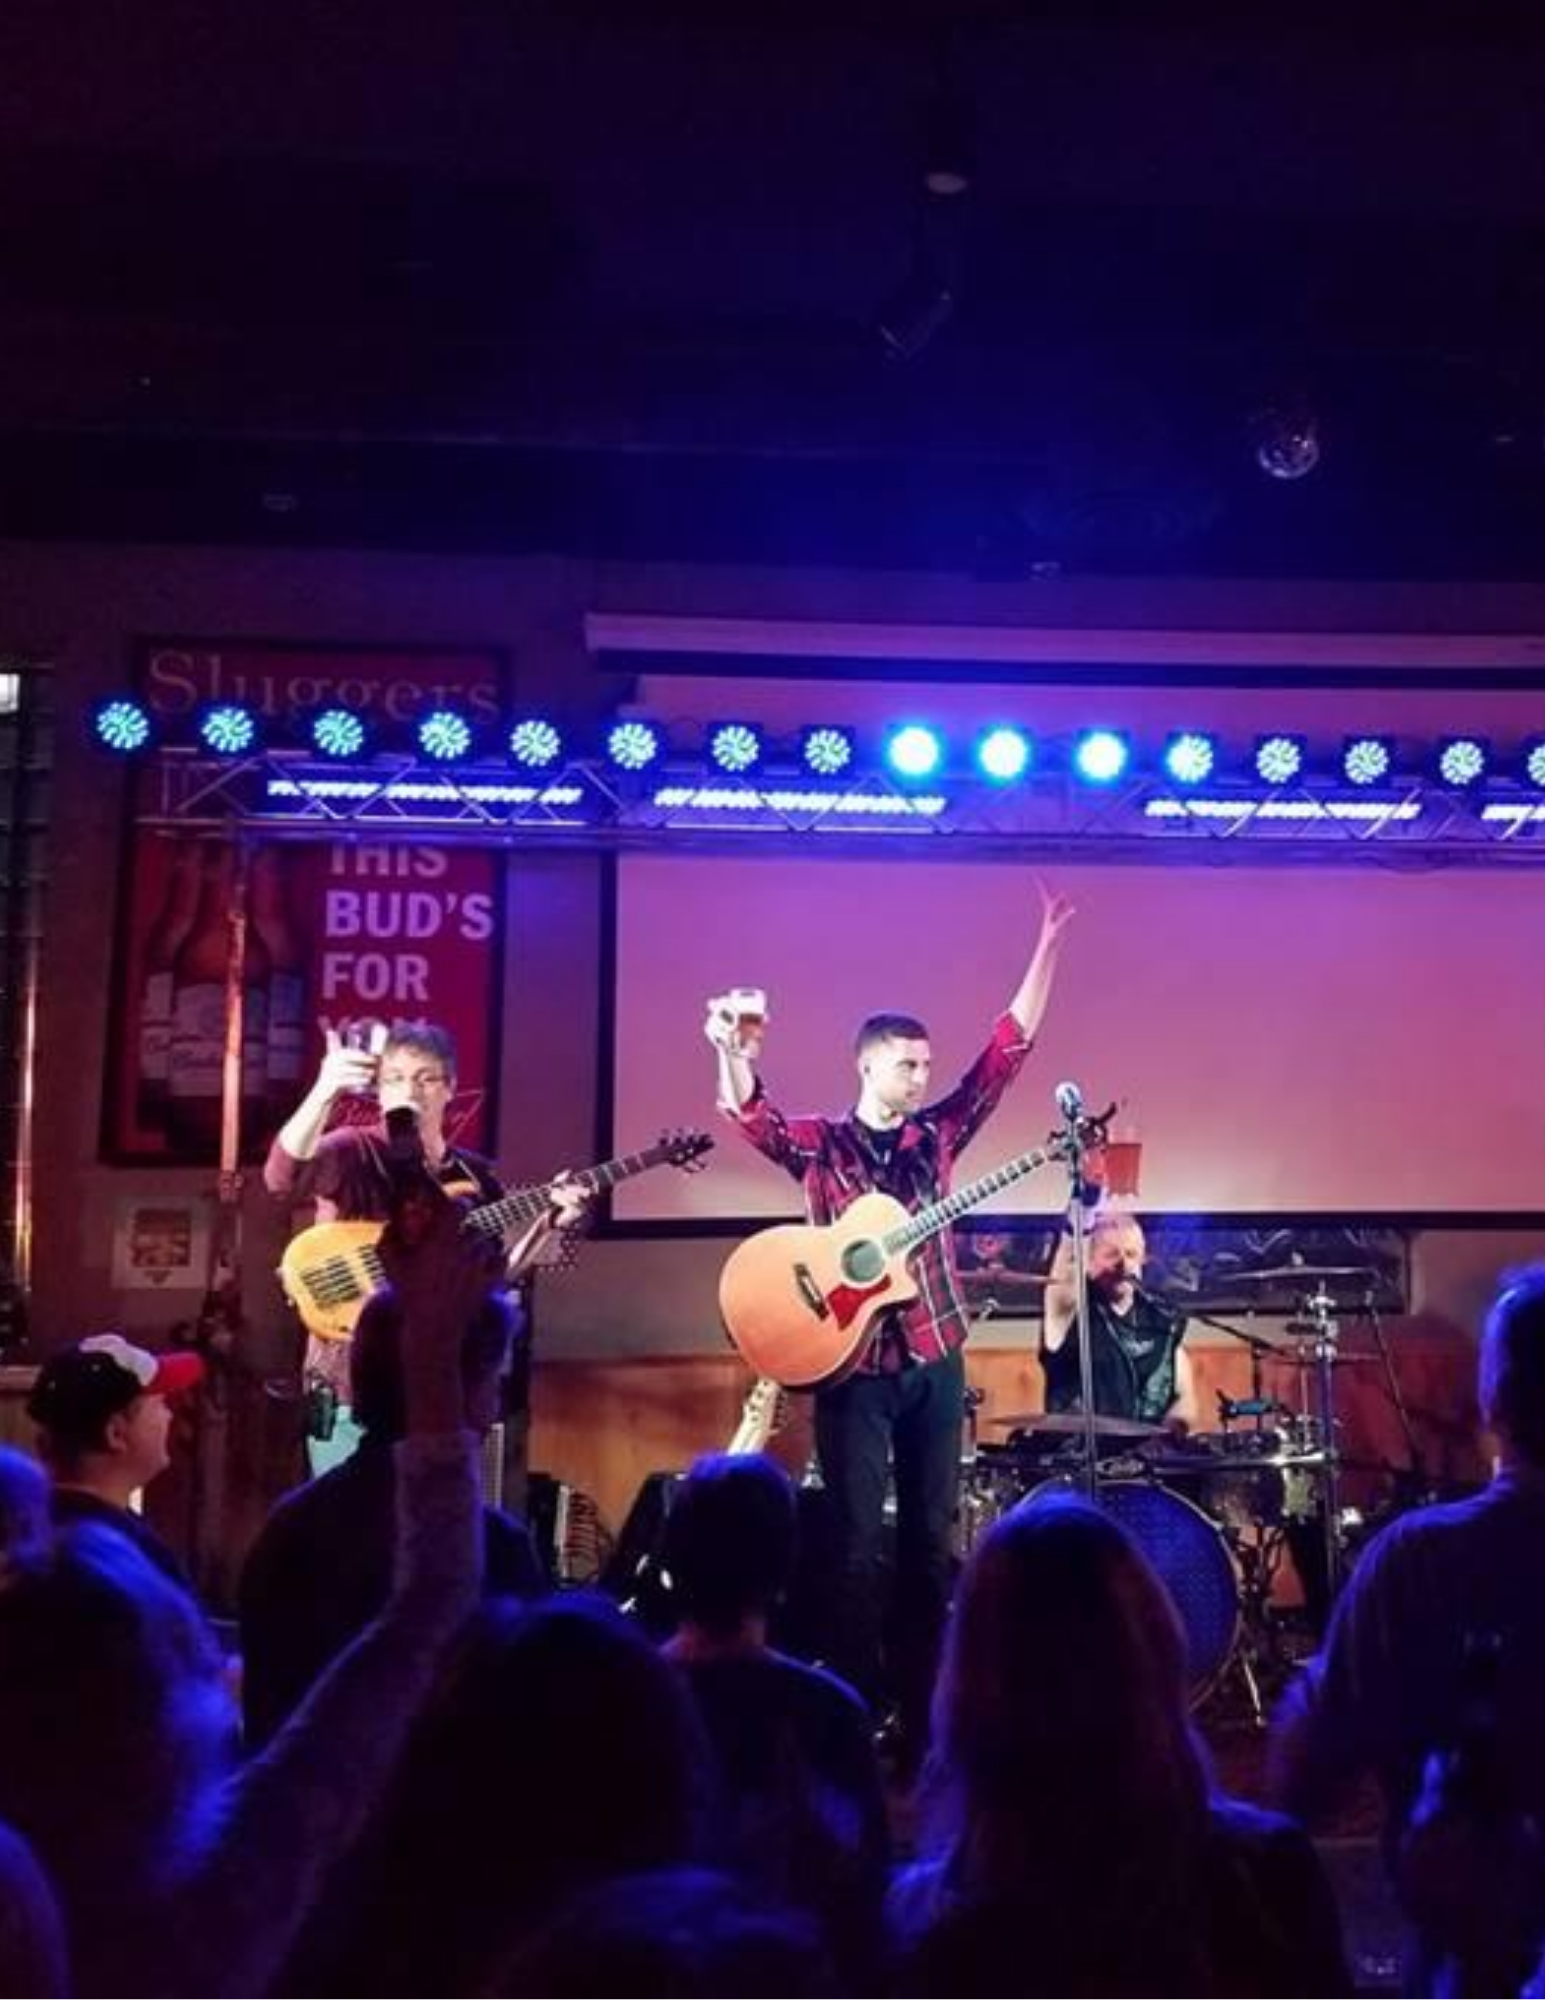 live entertainment at sluggers | live music at sluggers | sluggers sports bar & grill | located inside super bowl entertainment center | appleton, wi